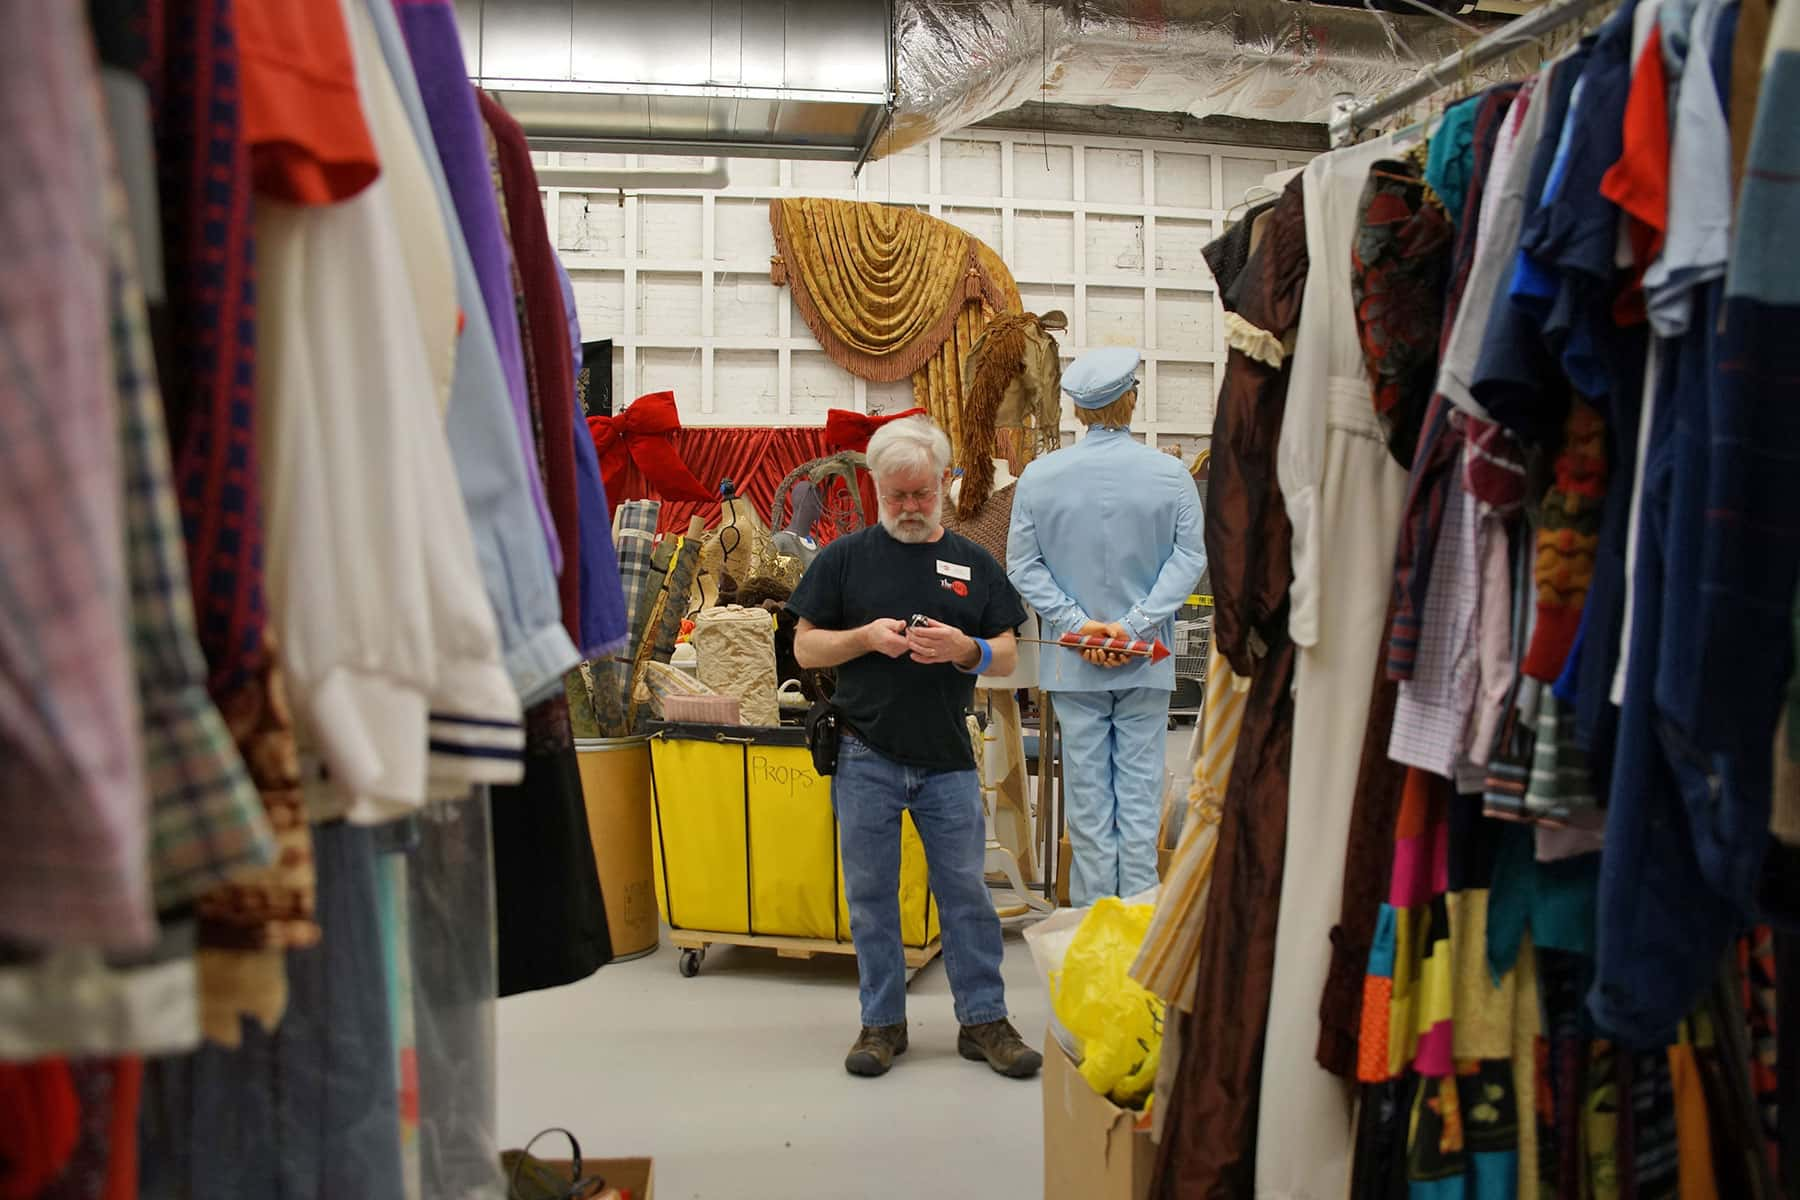 01_042917_therepgaragesale_0469